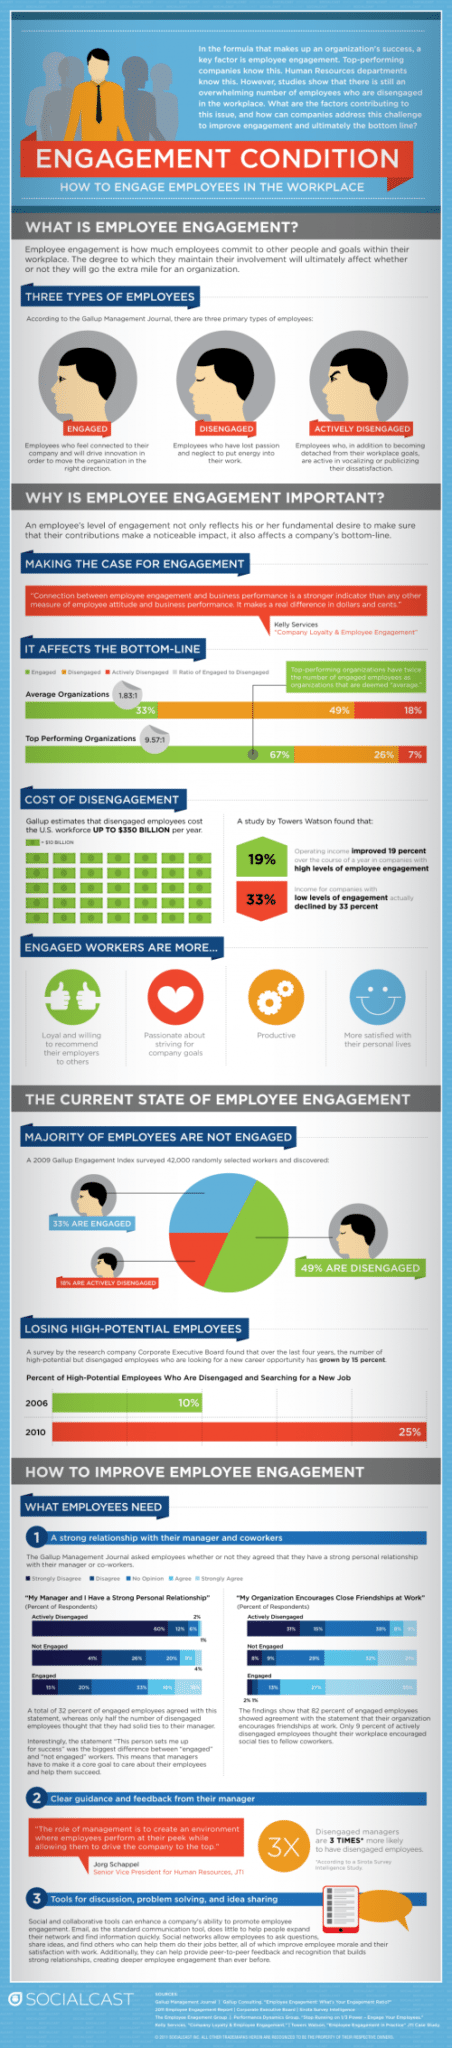 Measuring Employee Engagement 1